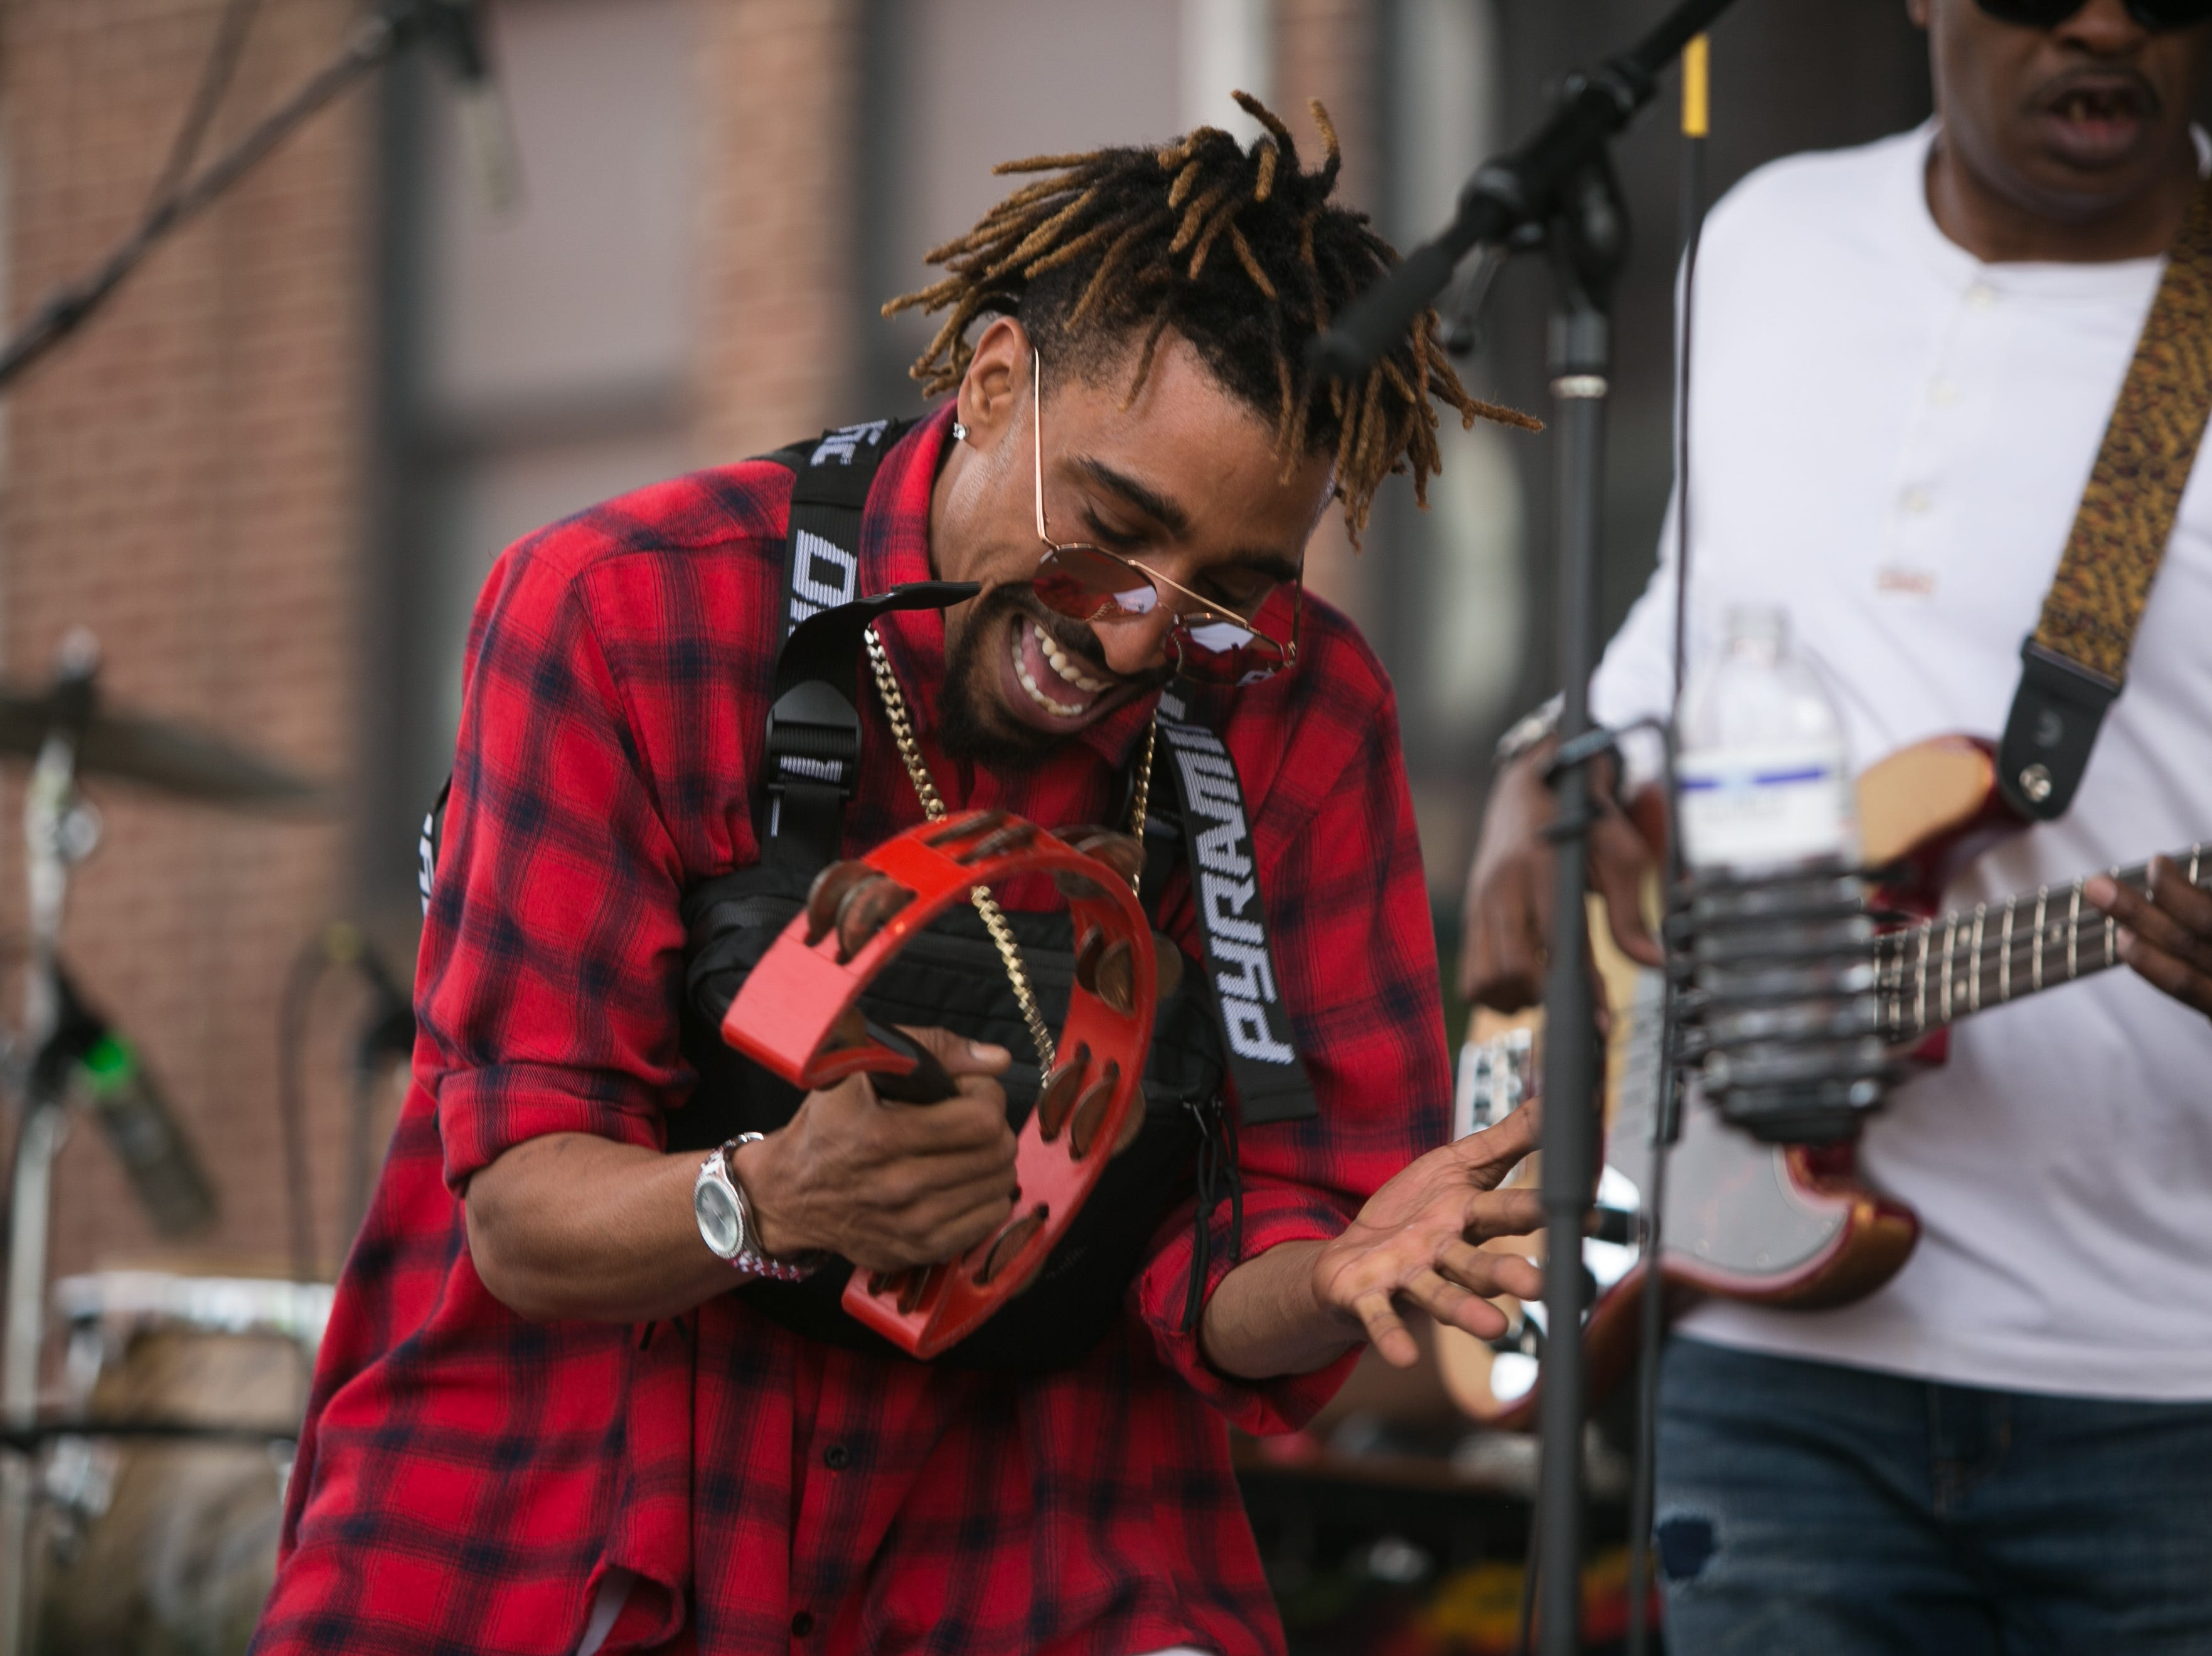 Lyric performed across the street from the U.S. Cellular Center at the Ingles SoCon Fan Experience at 68 Haywood St. in downtown Asheville on March 10, 2019,